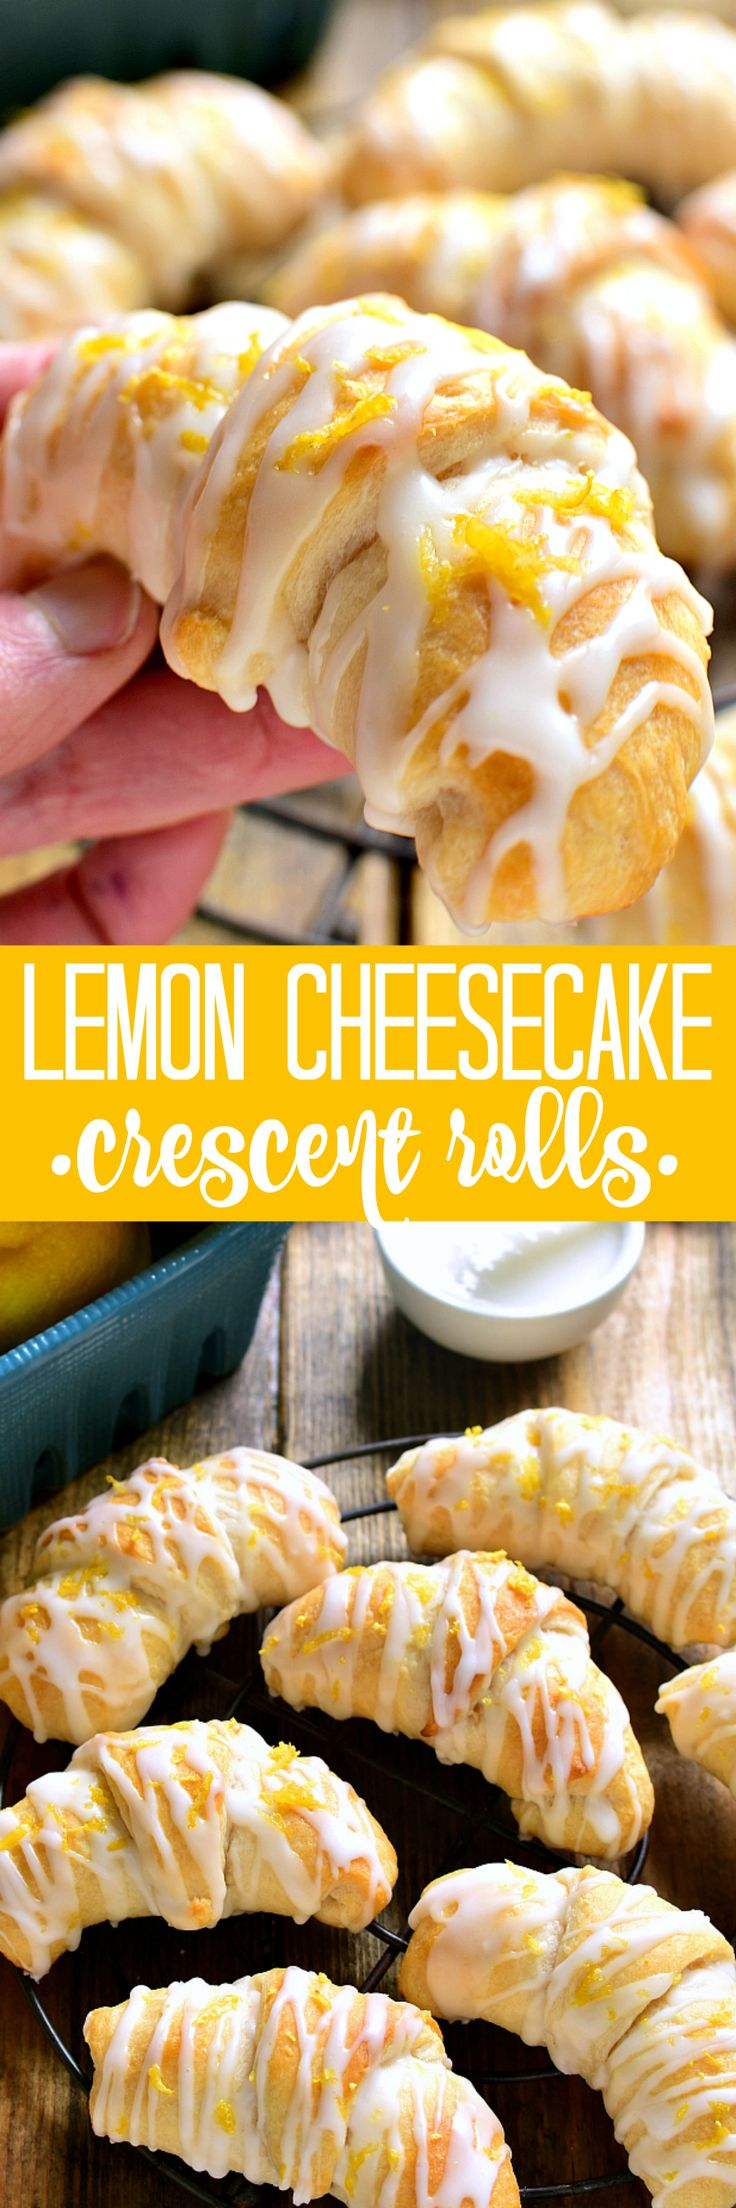 These Lemon Cheesecake Crescent Rolls are bursting with bright lemon flavor! Flaky crescent rolls filled with creamy lemon cheesecake and topped with a citrus glaze...the perfect addition to any brunc (Dessert Recipes Cheesecake)